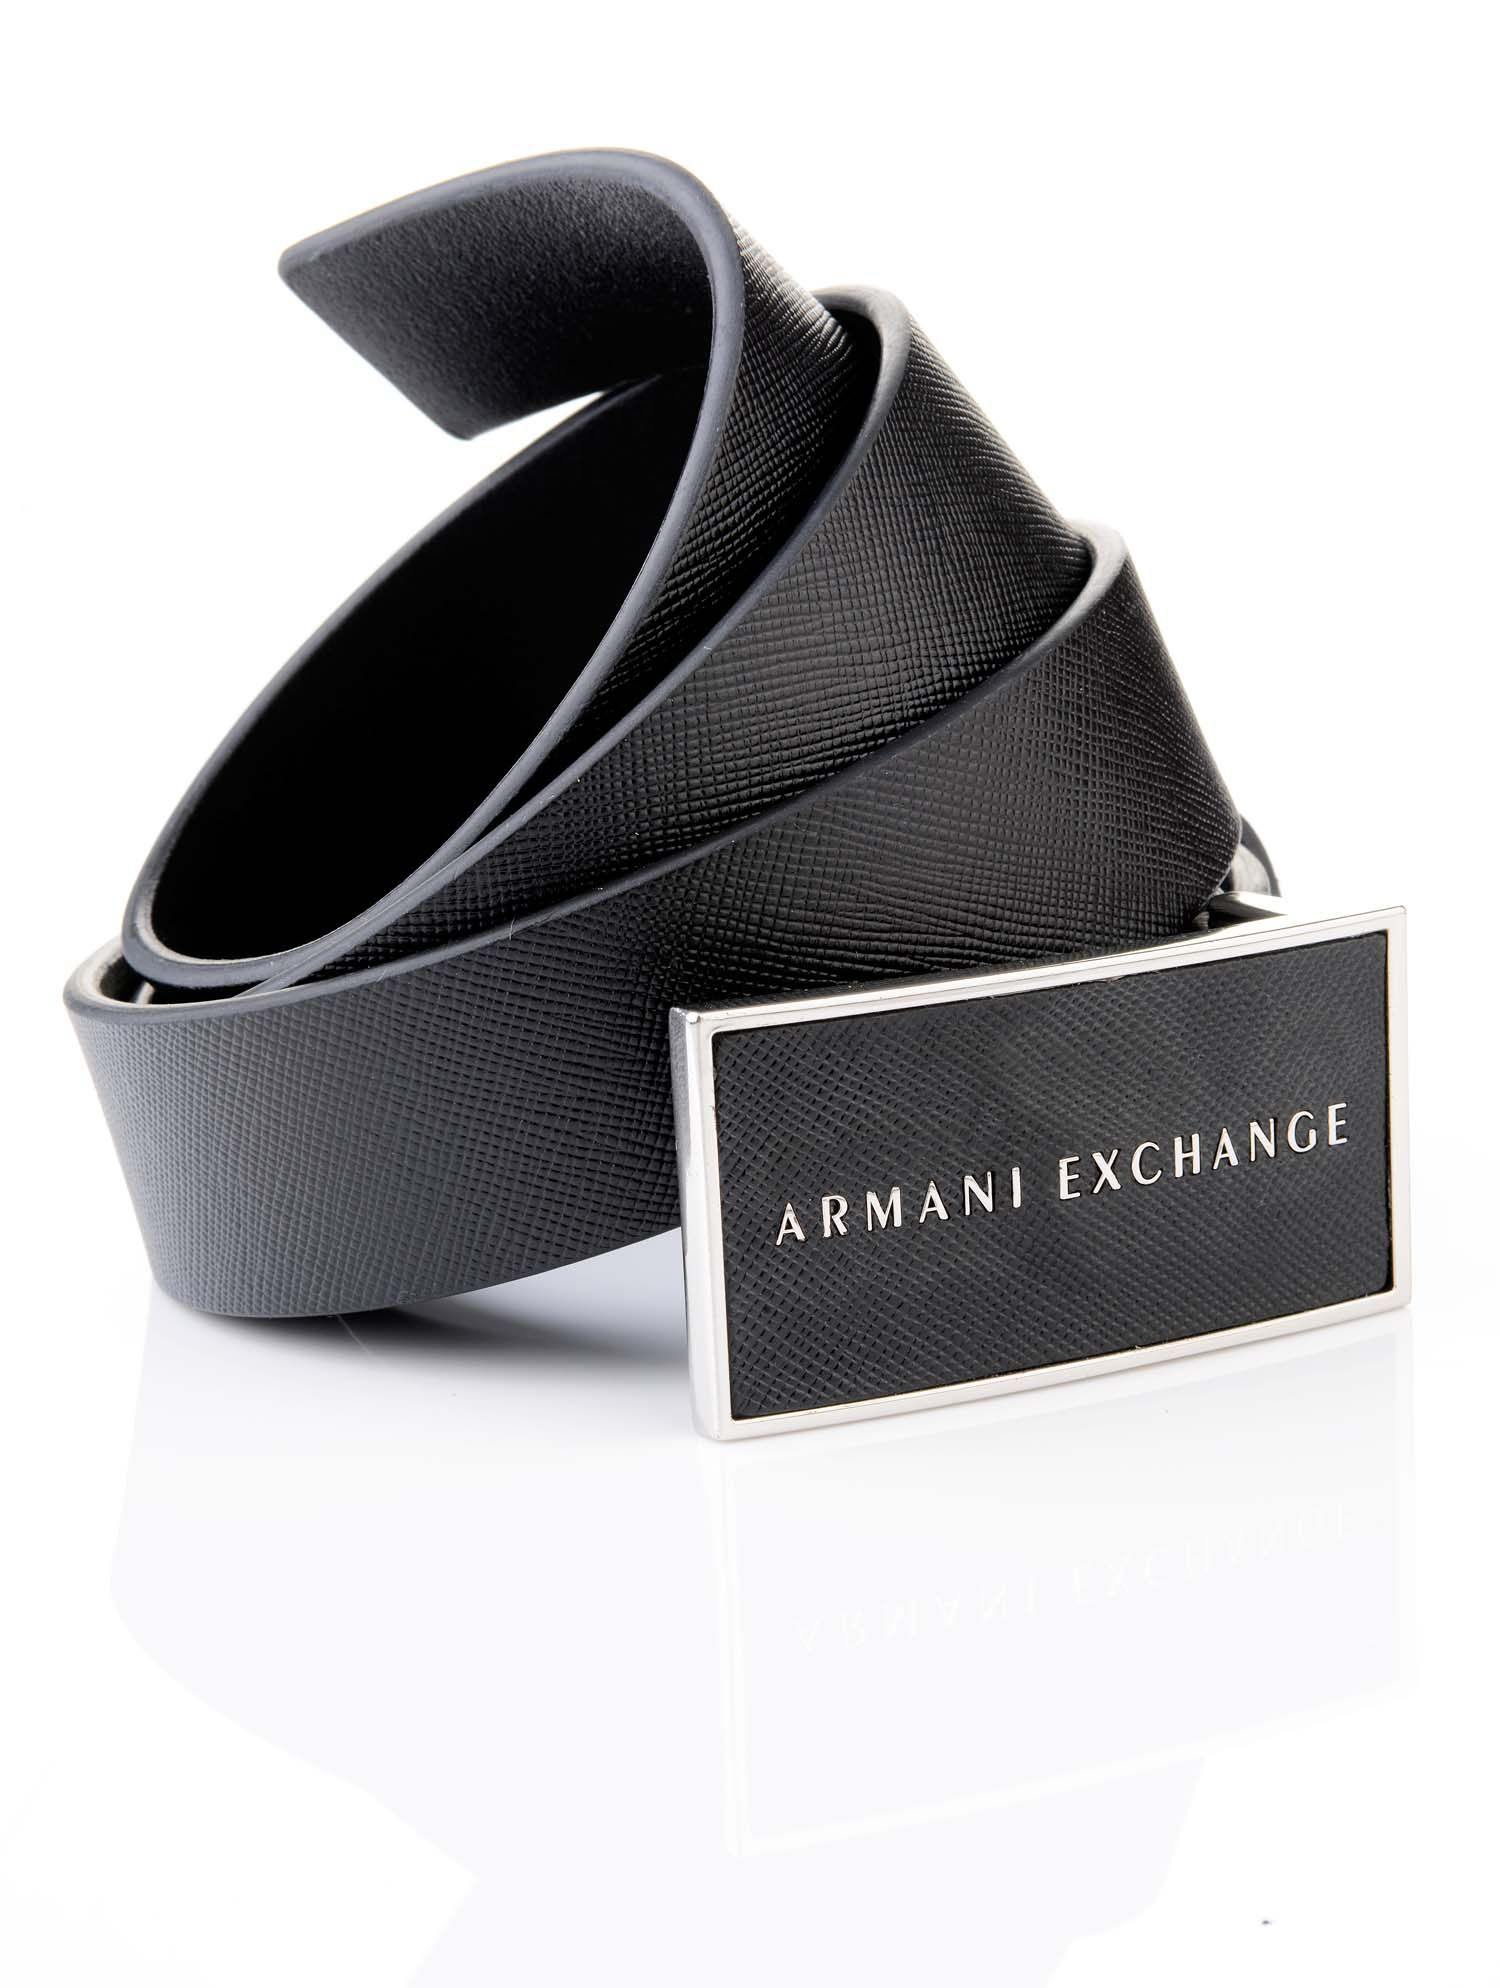 armani exchange mens black leather belt store picks